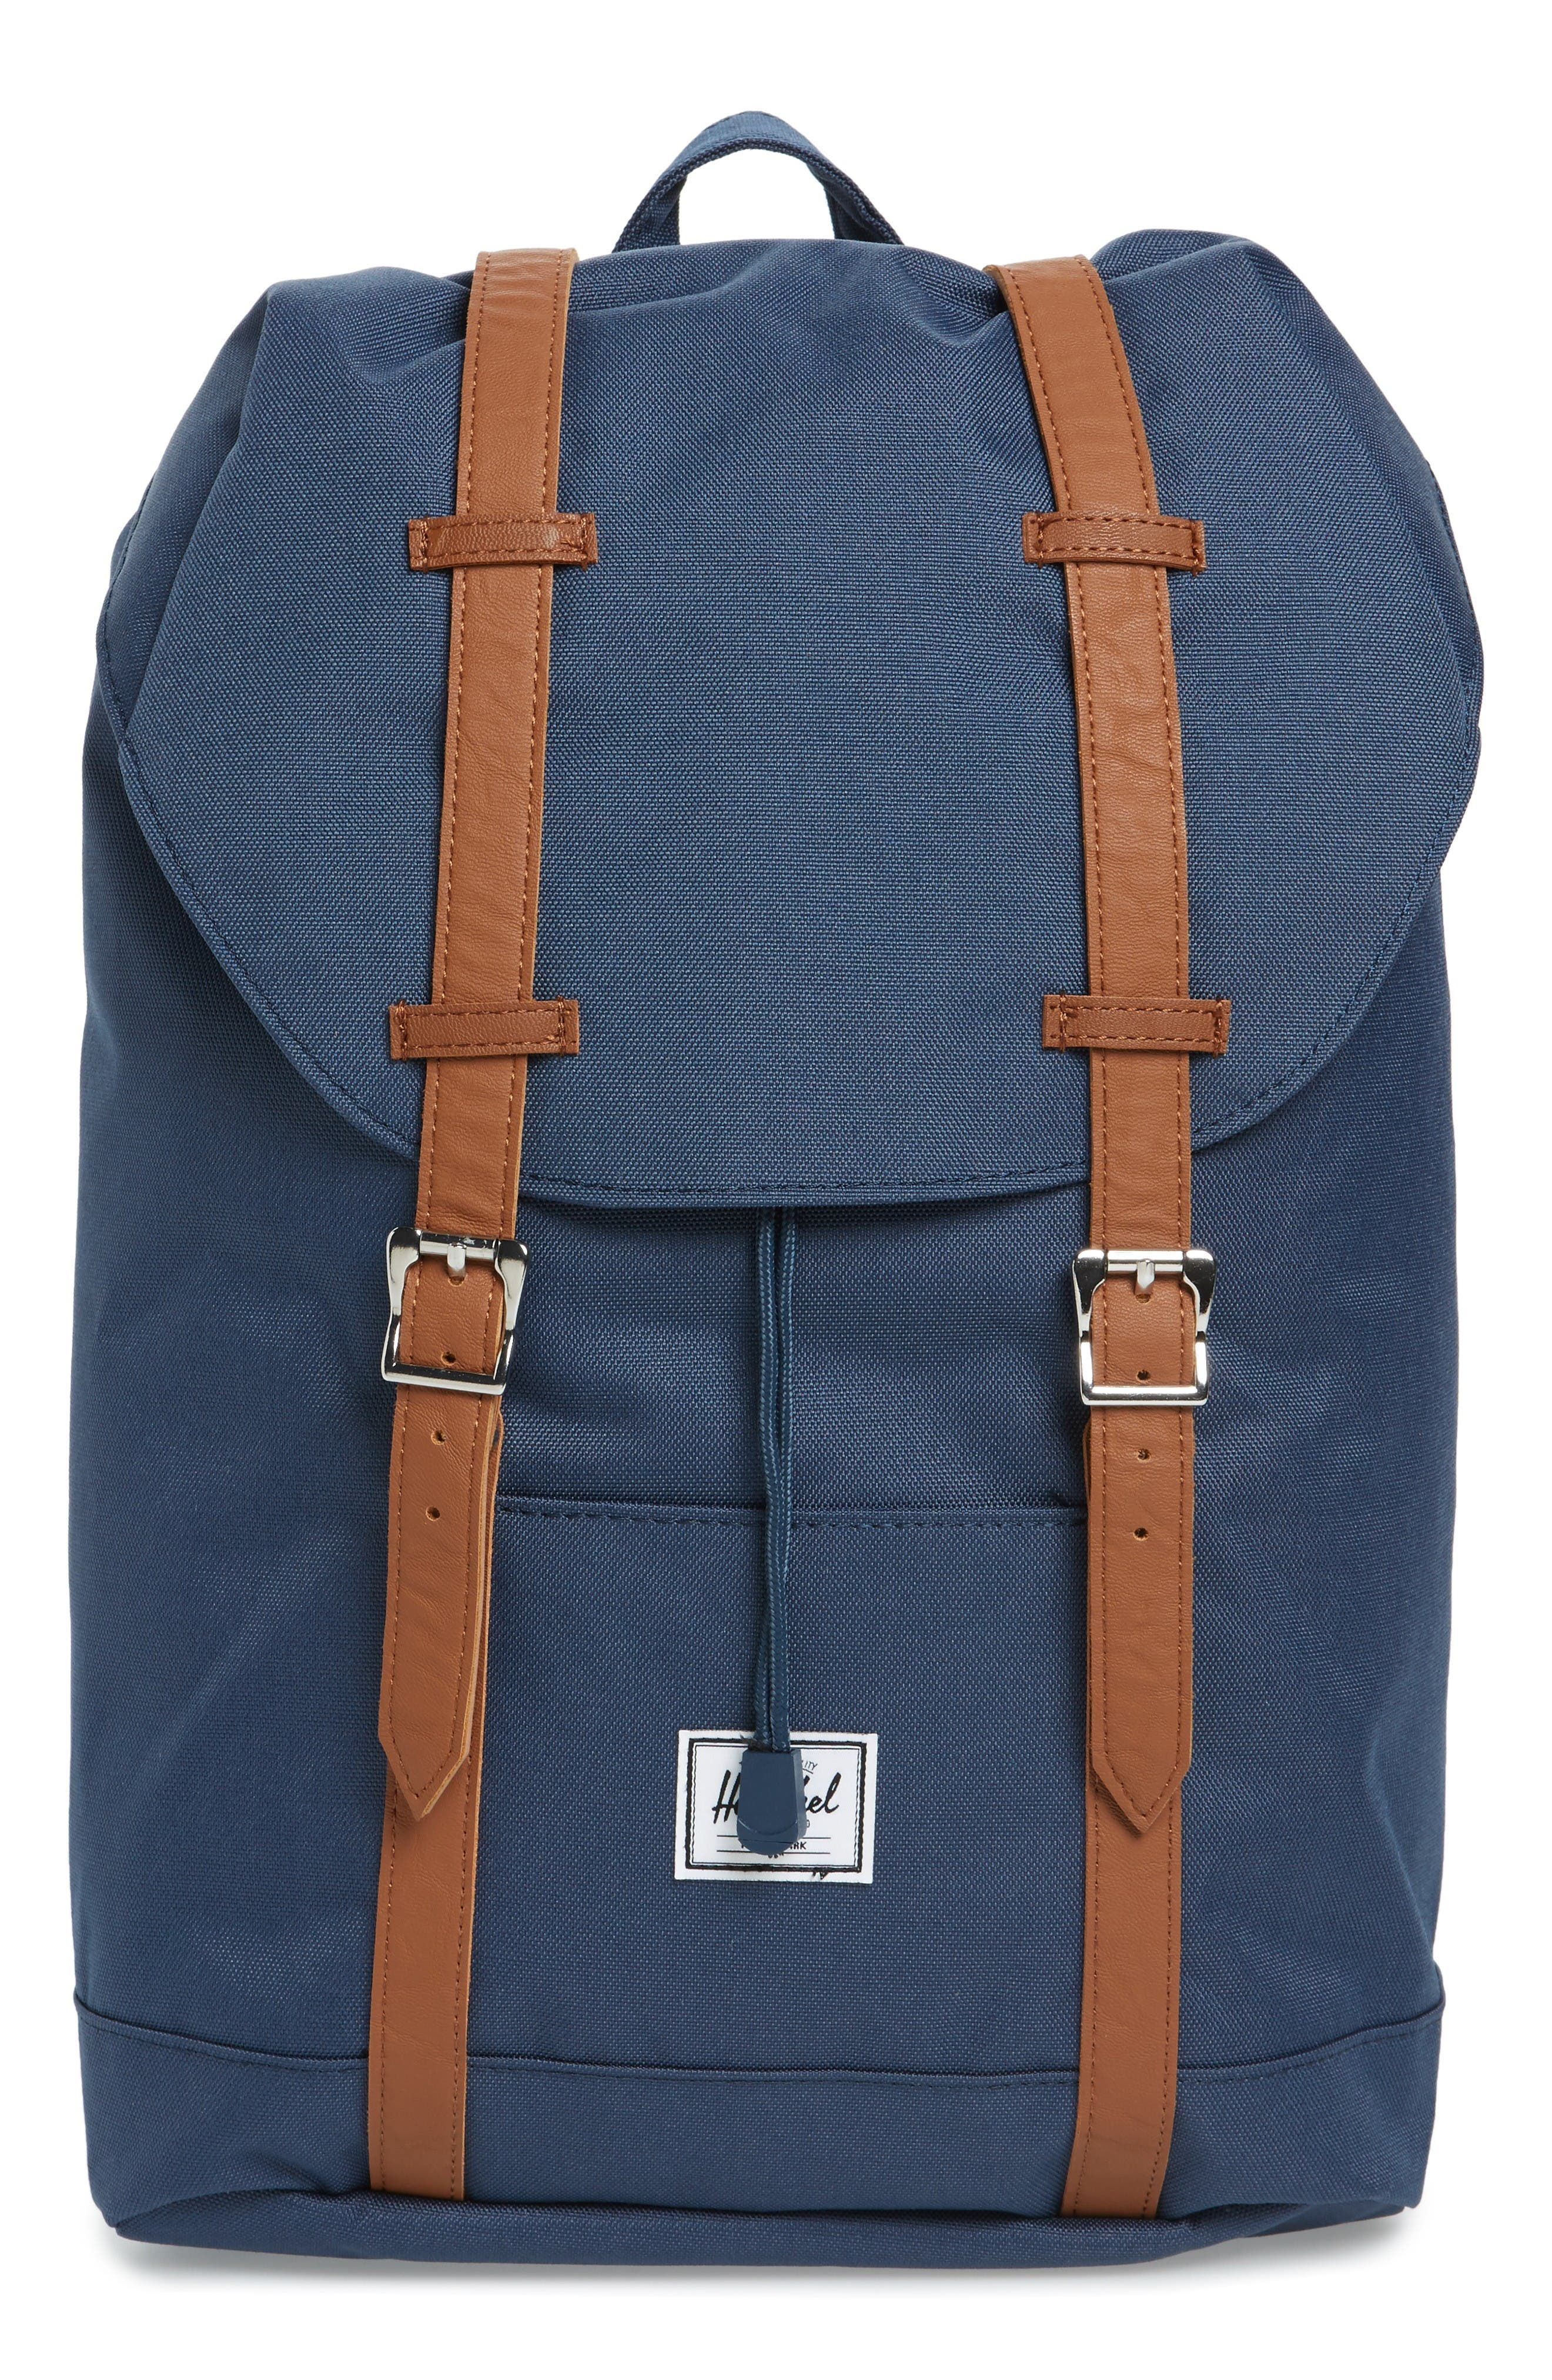 Retreat Mid Volume Backpack,                         Main,                         color, Navy